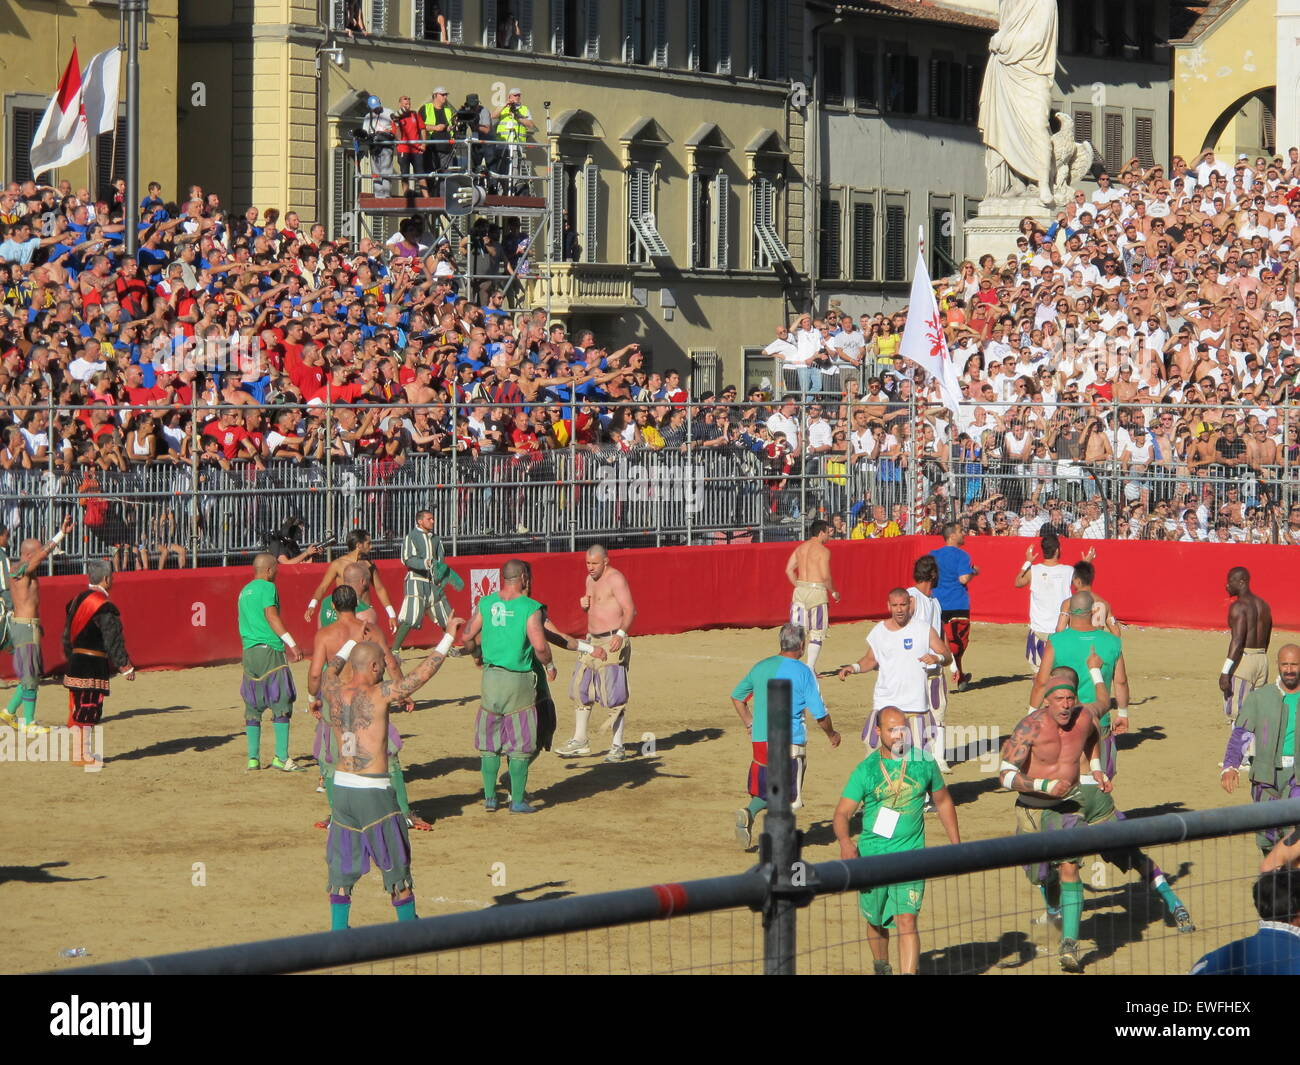 Florence, Italy. 24th June, 2015. Calcio Storico - a type of rugby with few rules that has been played here since Stock Photo